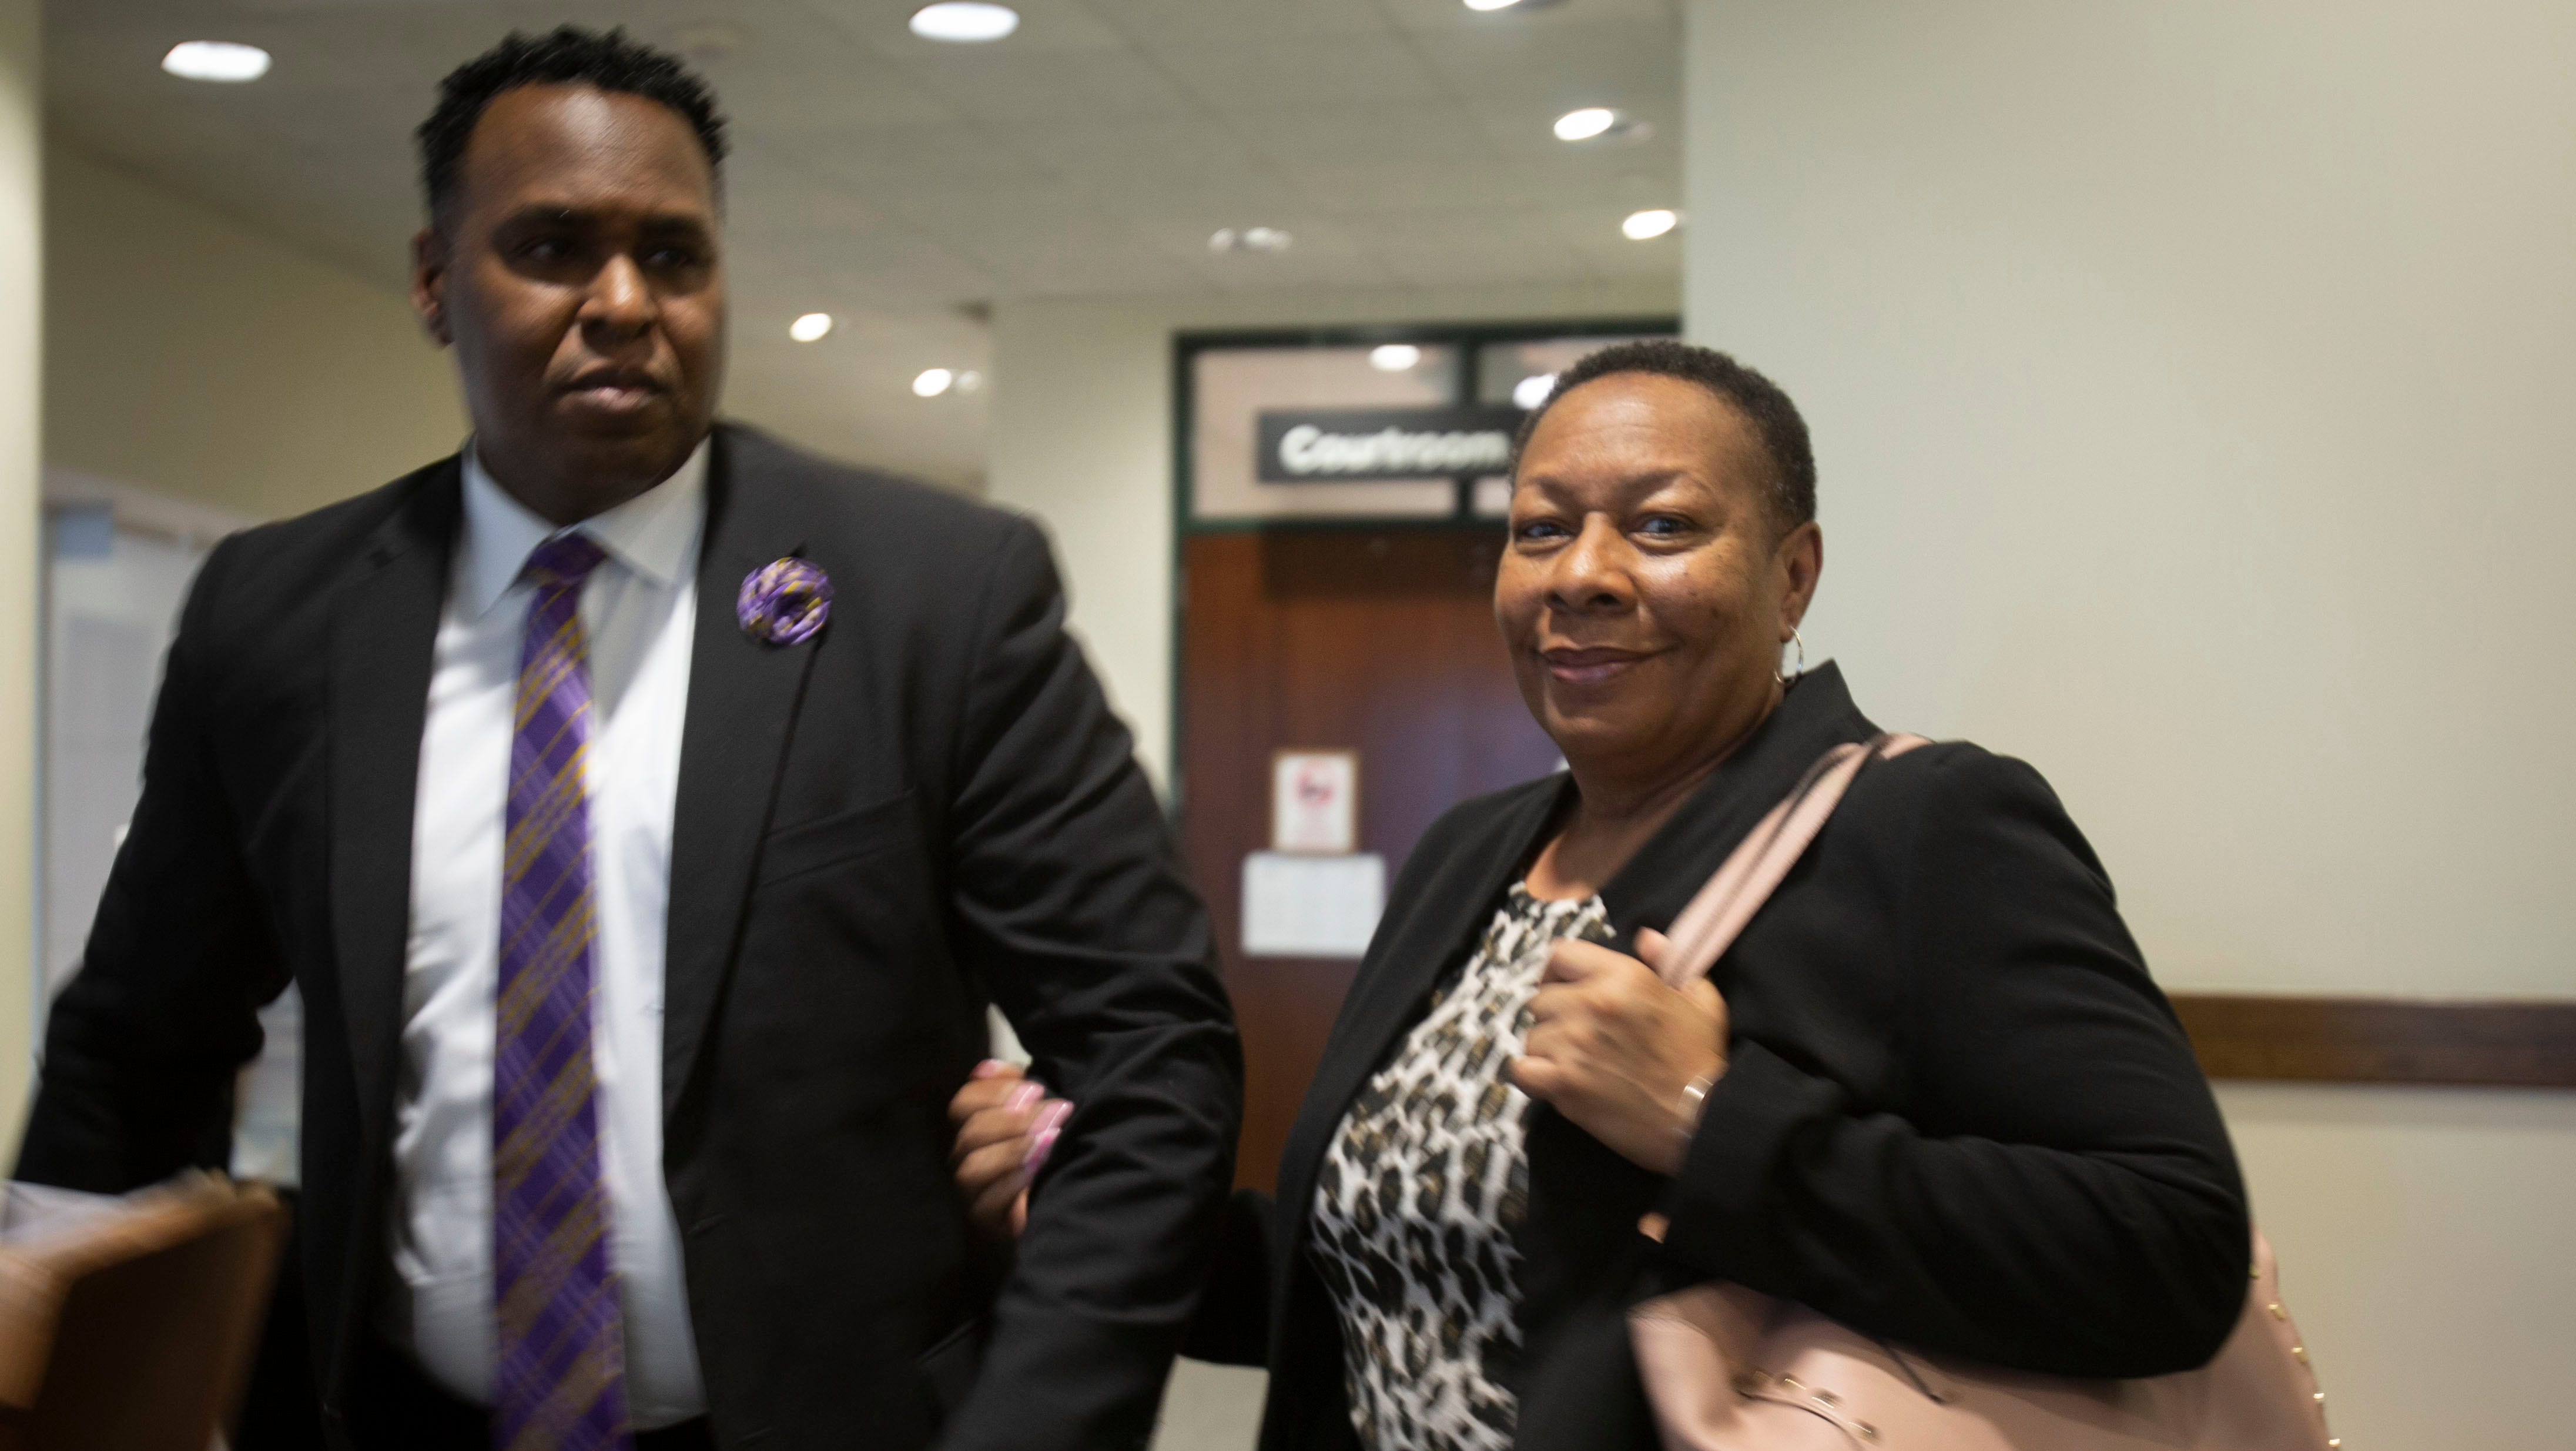 Attorney Christopher O'Neal and mother of Terrance Williams, Marcia stand outside courtroom 3-1 at the Collier County Courthouse Thursday, Feb.14, 208. O'Neal is one of the attorneys representing Williams' estate in a lawsuit filed against former CCSO deputy Steven Calkins that states he is responsible for the disappearance and death of two Collier men.